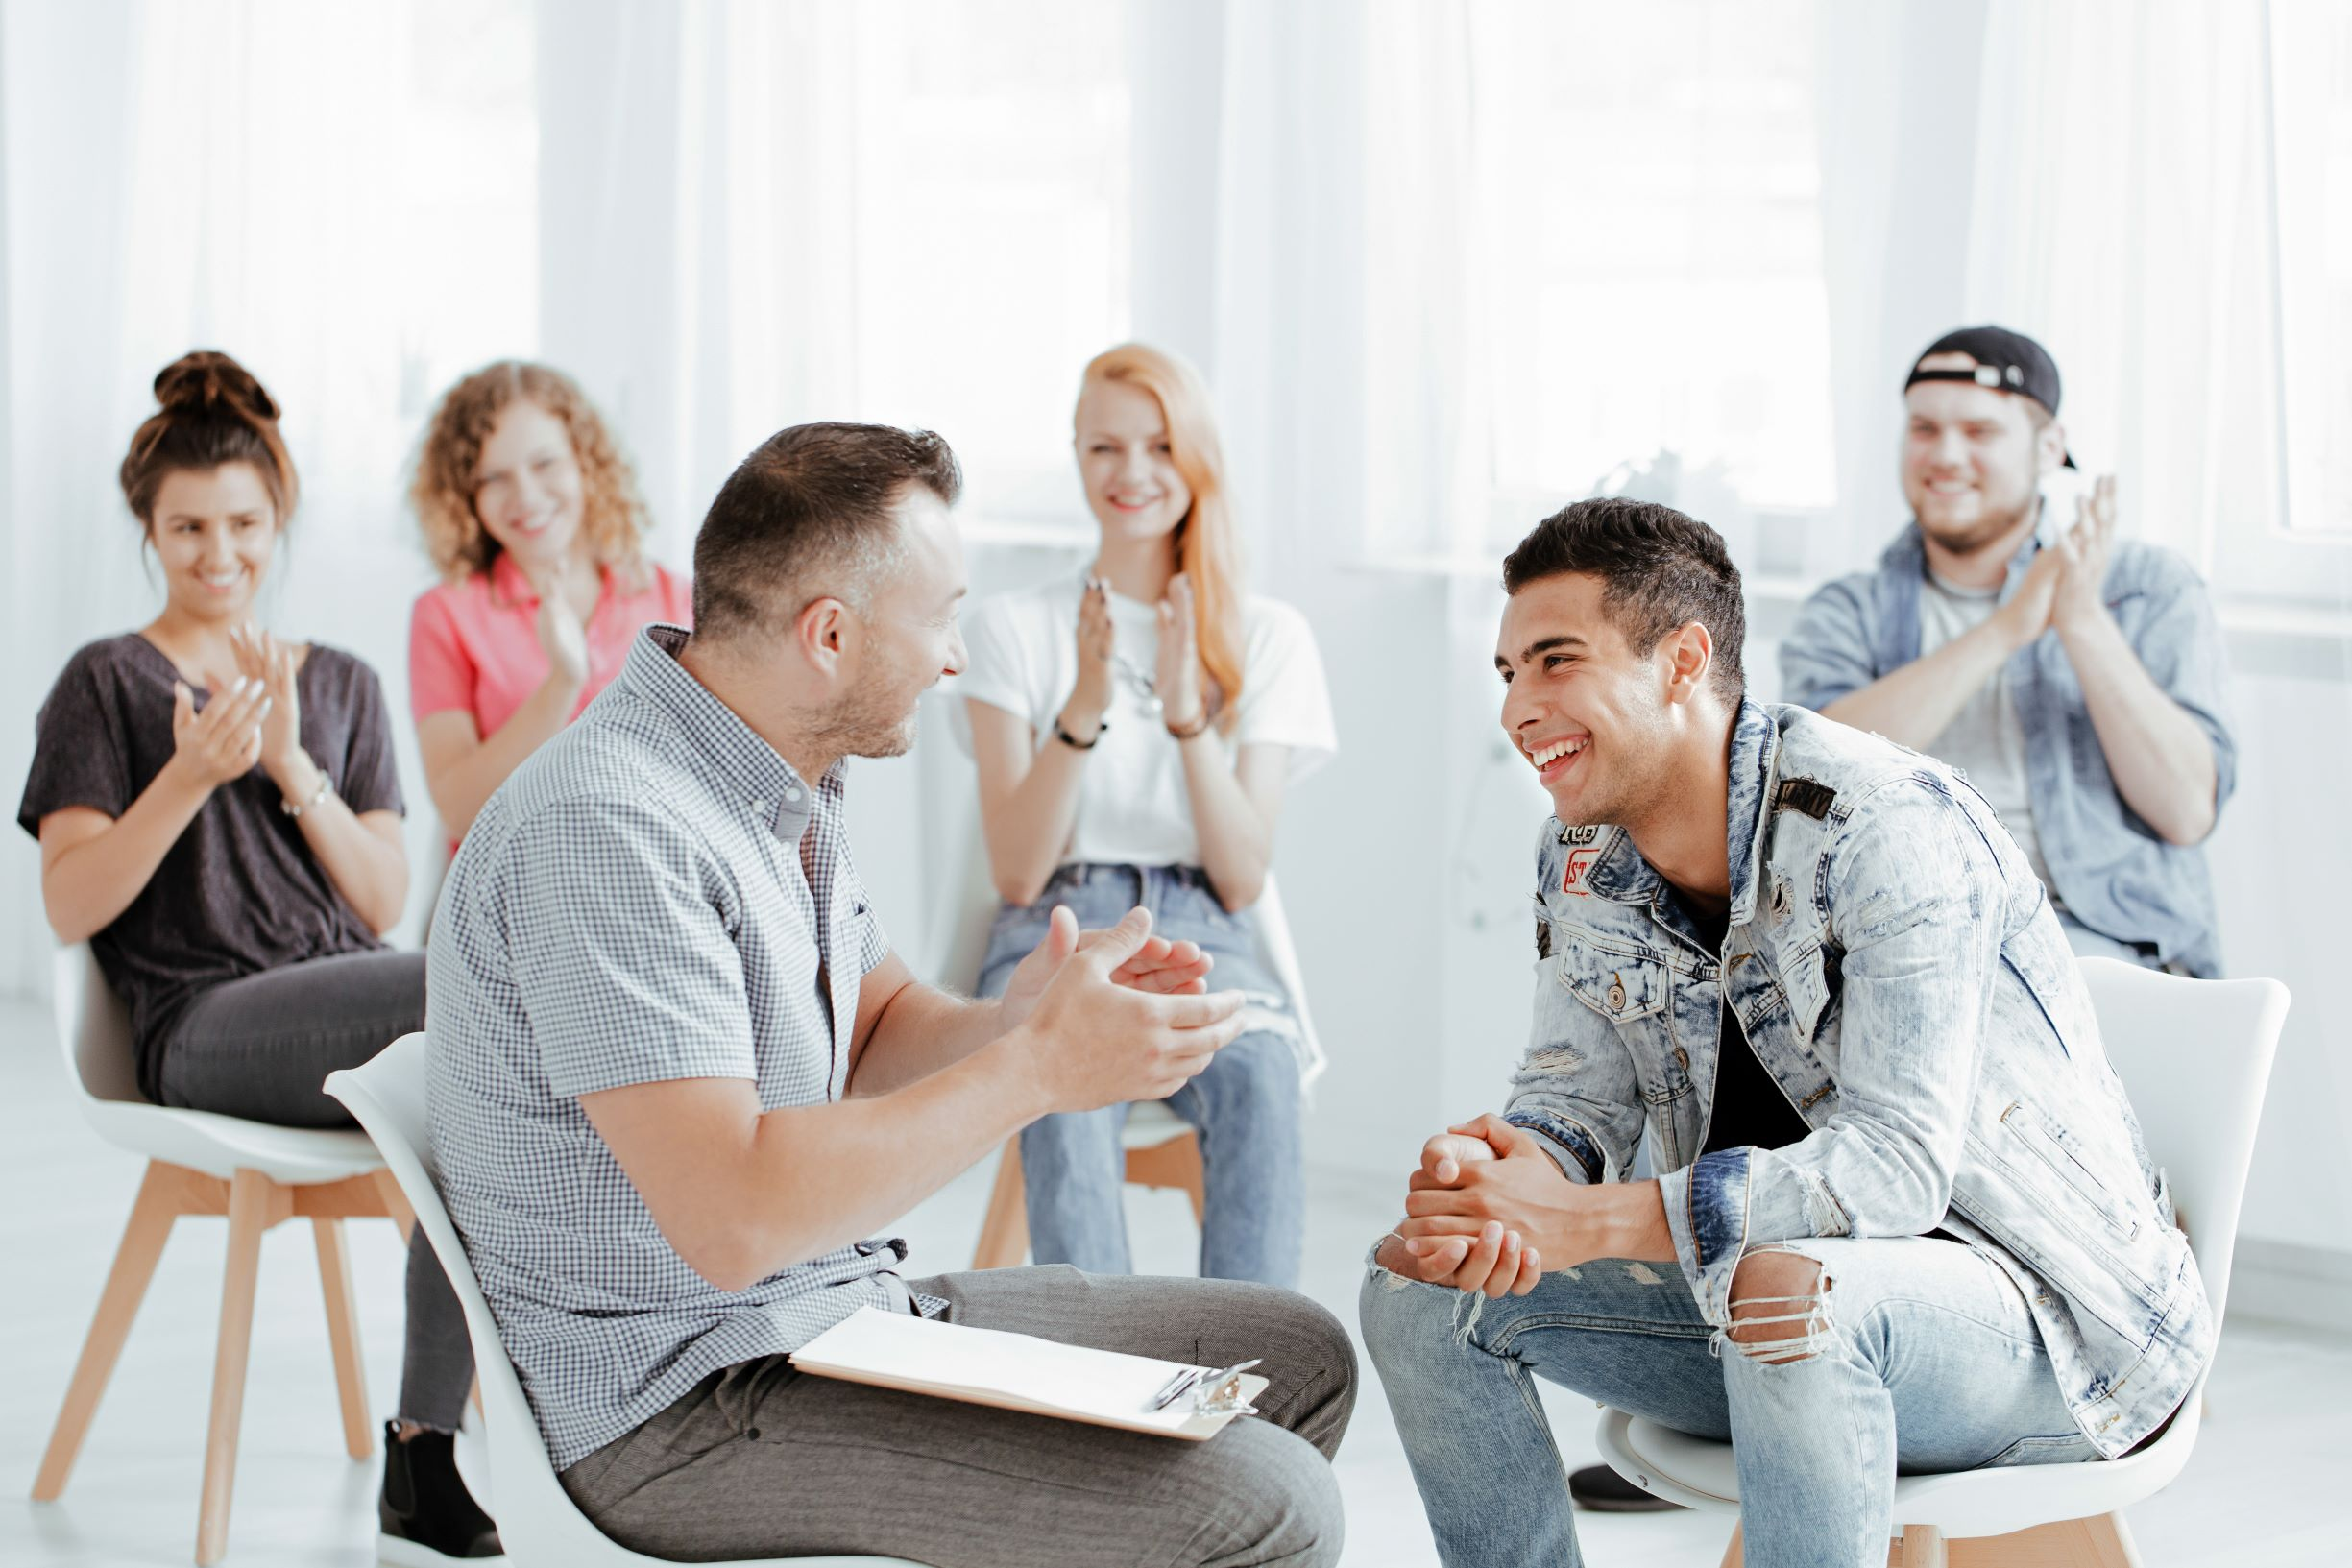 A teen group therapy session occurring in Katy, TX 77494 discussing issues such as anxiety and depression treatment. Group of people sitting in a circle clapping for an individual. Represents group therapy and how group therapy for teens can help teens.